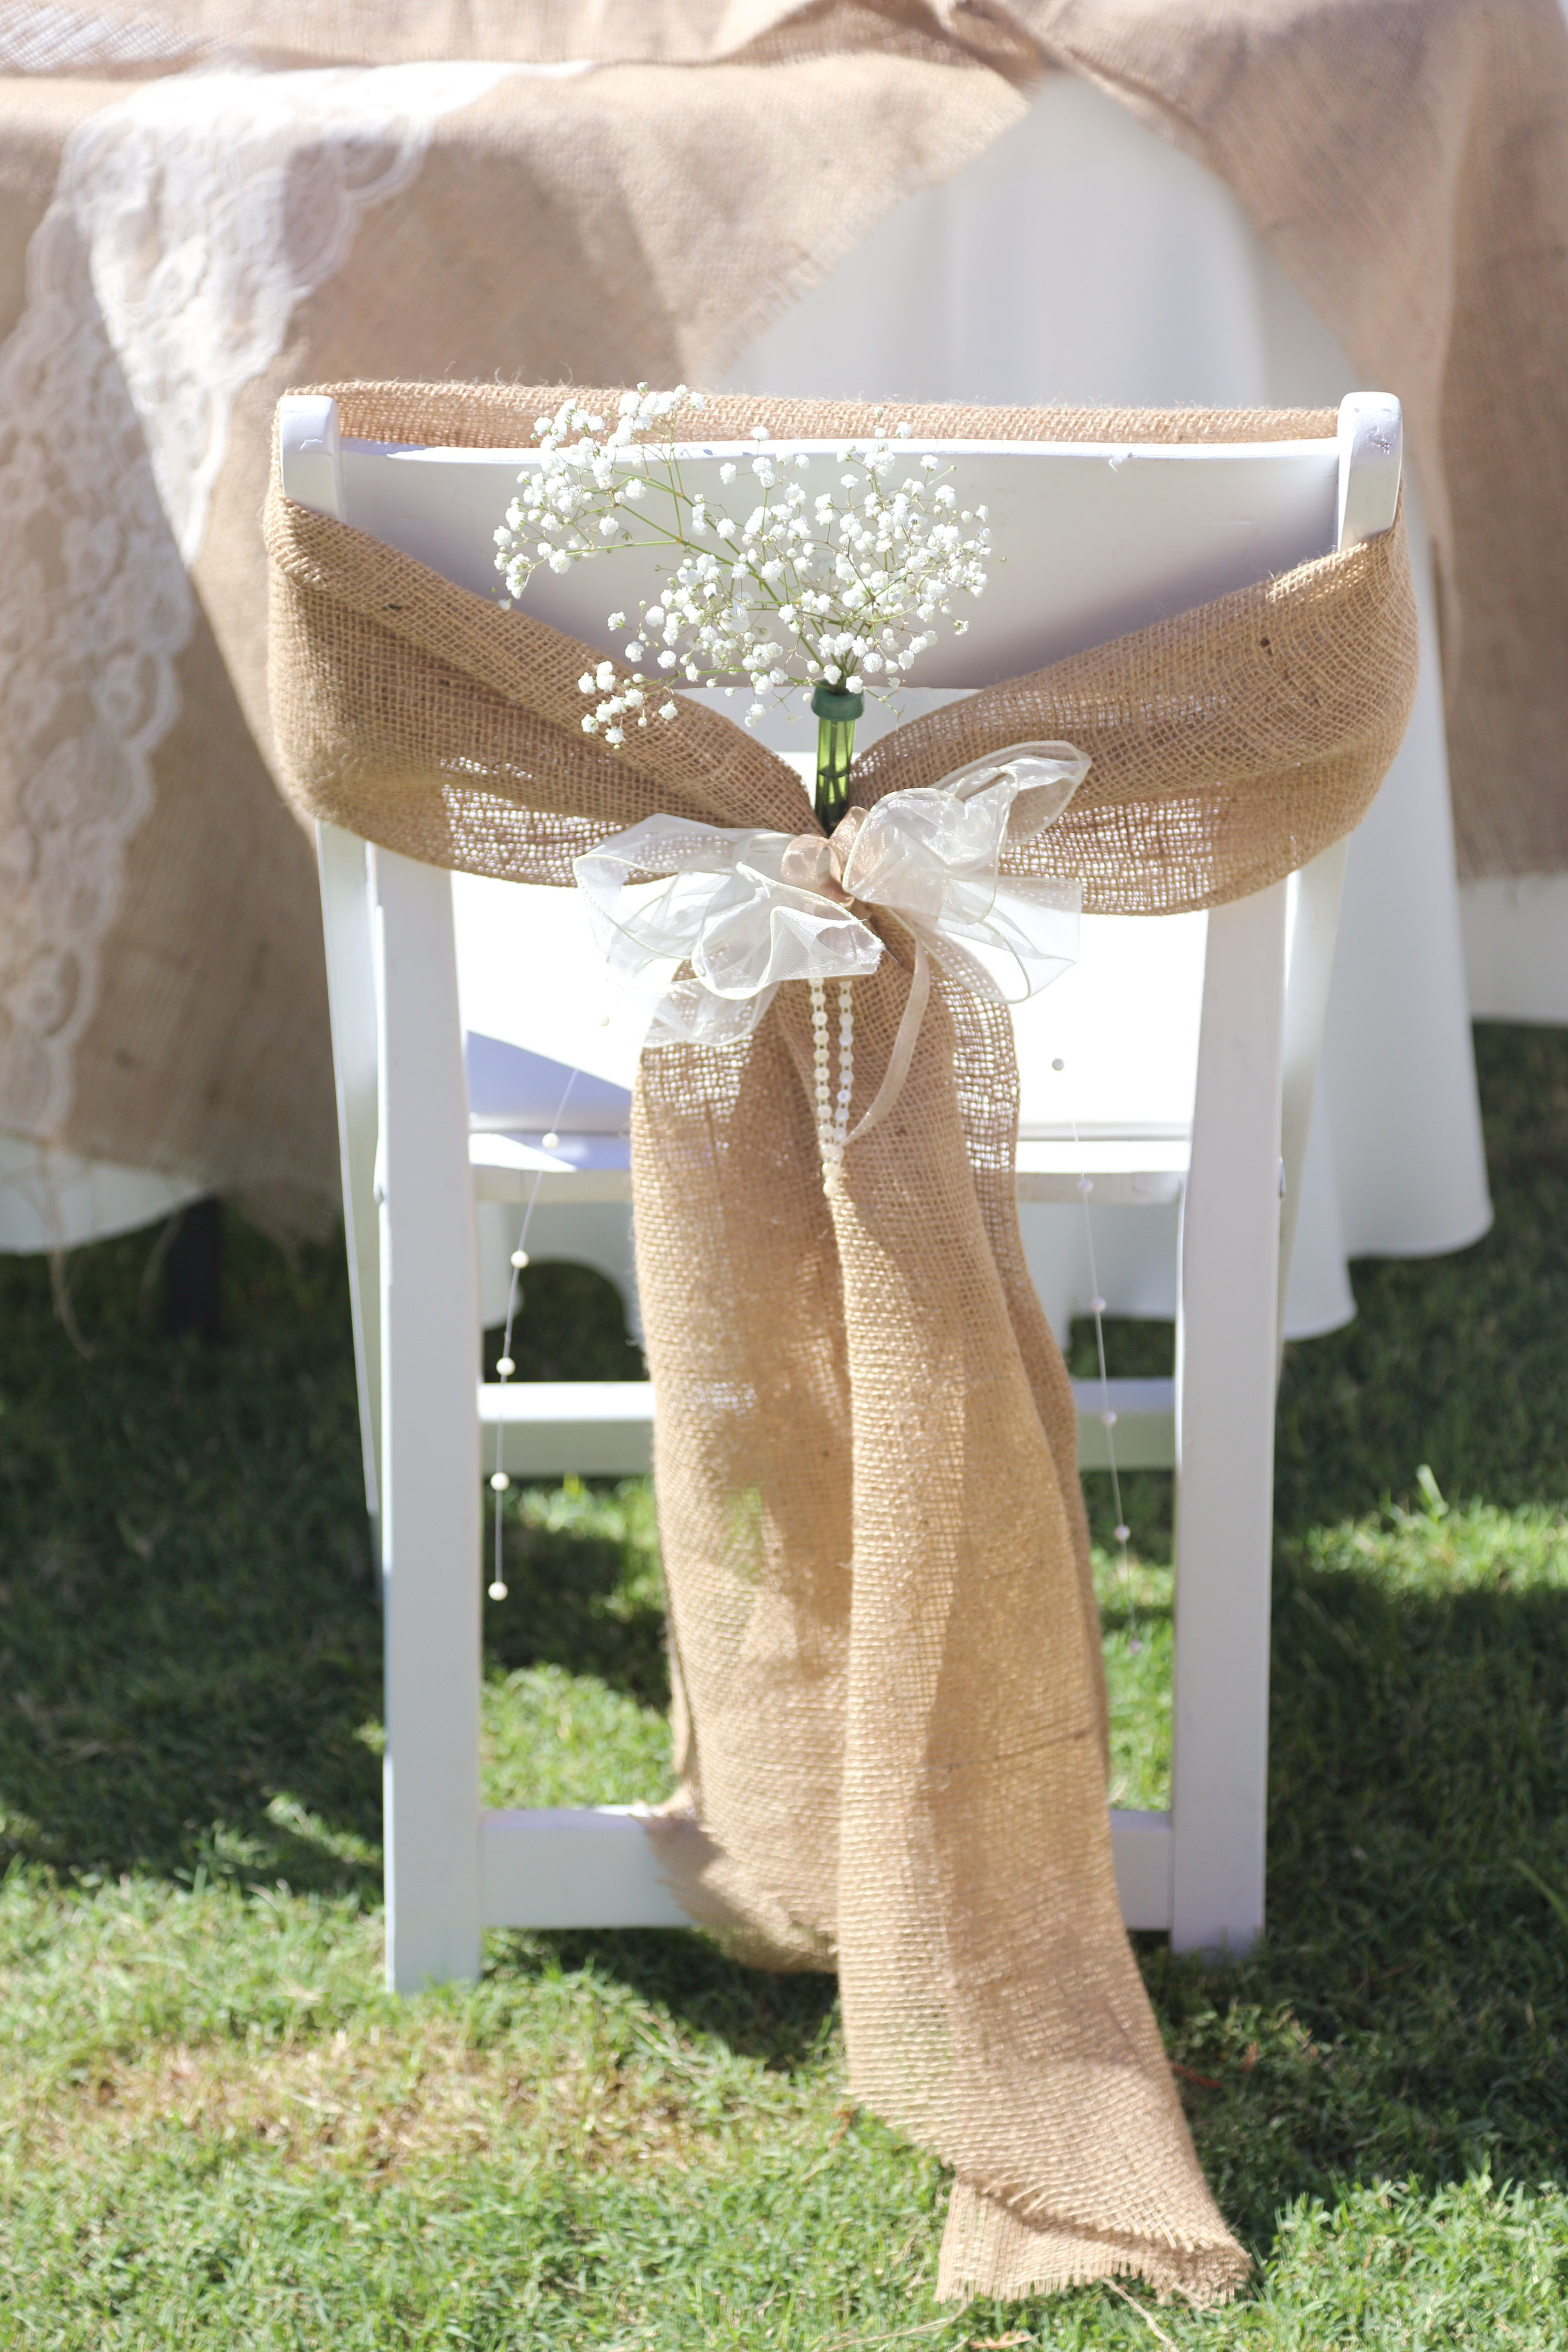 Wedding chair sash to dress up chairs